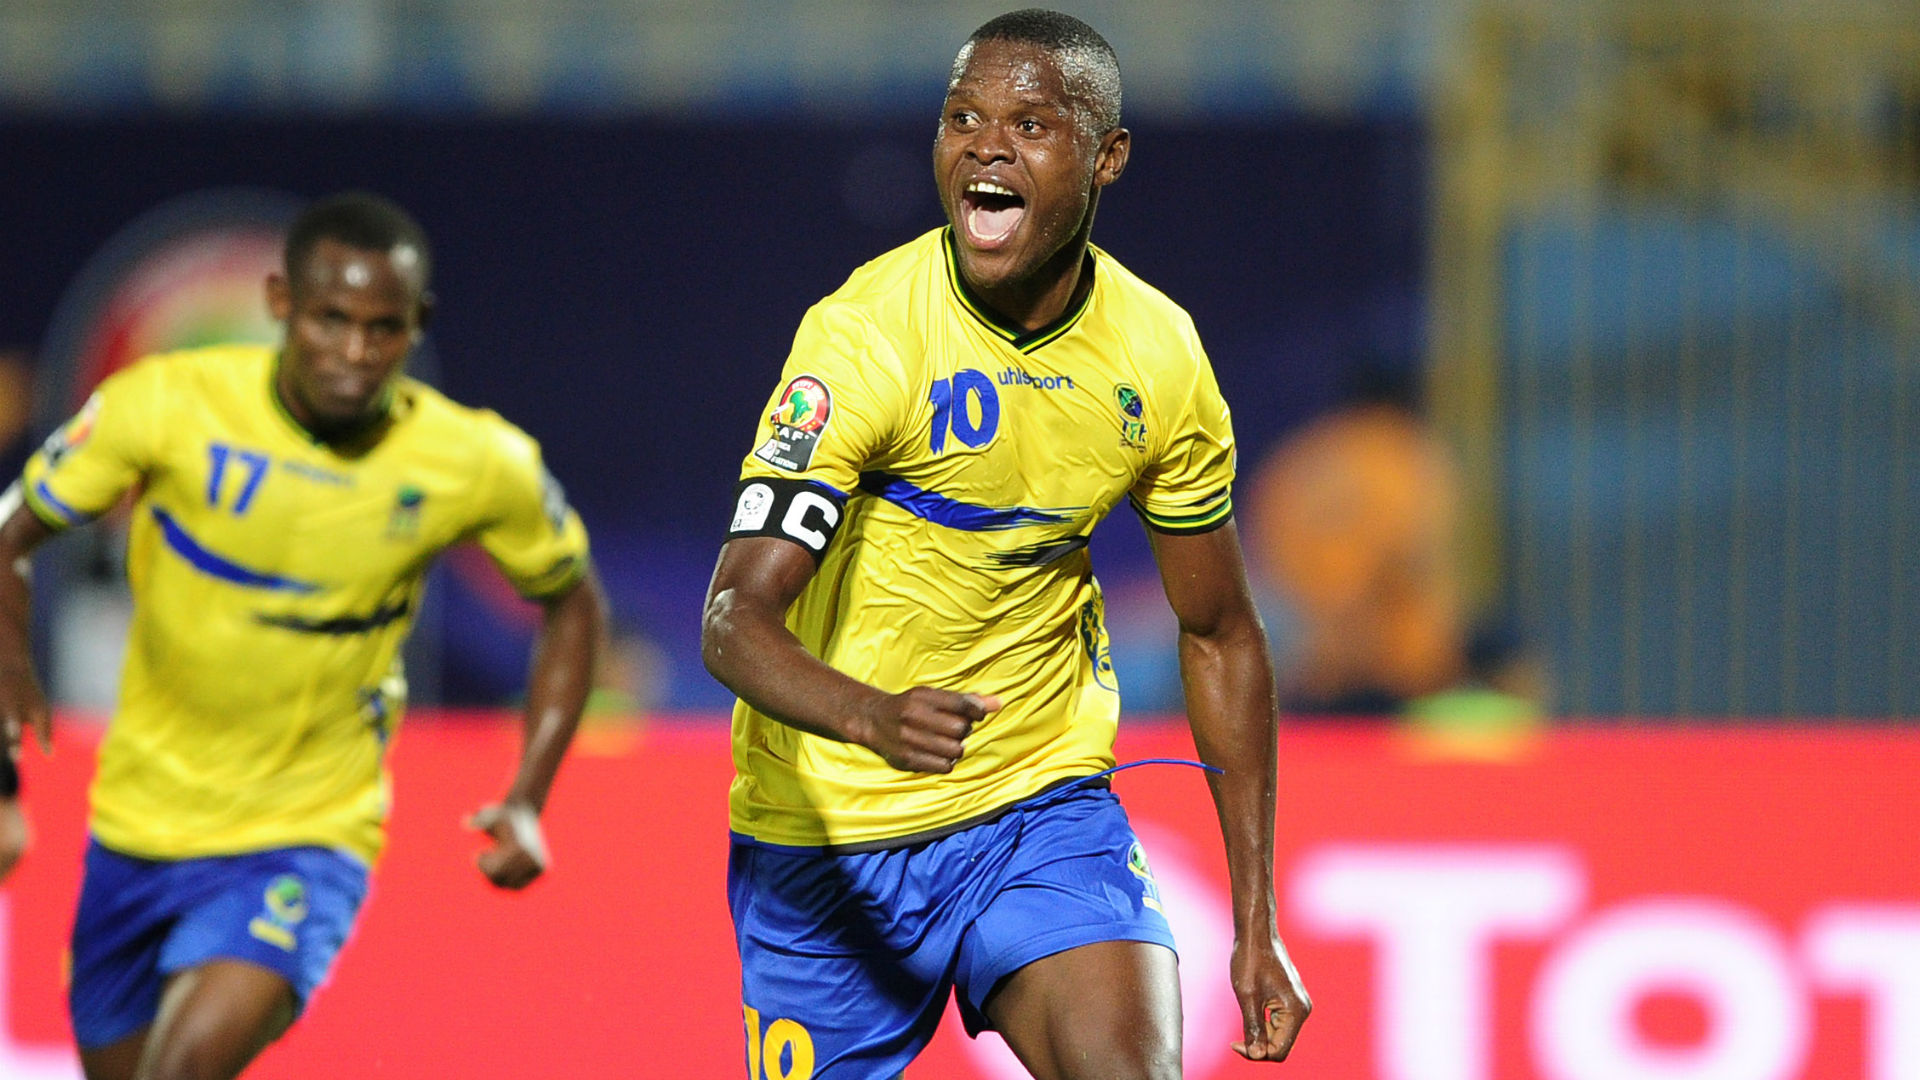 Afcon 2021 Qualifiers: Tanzania knows nothing about Equatorial Guinea – Samatta